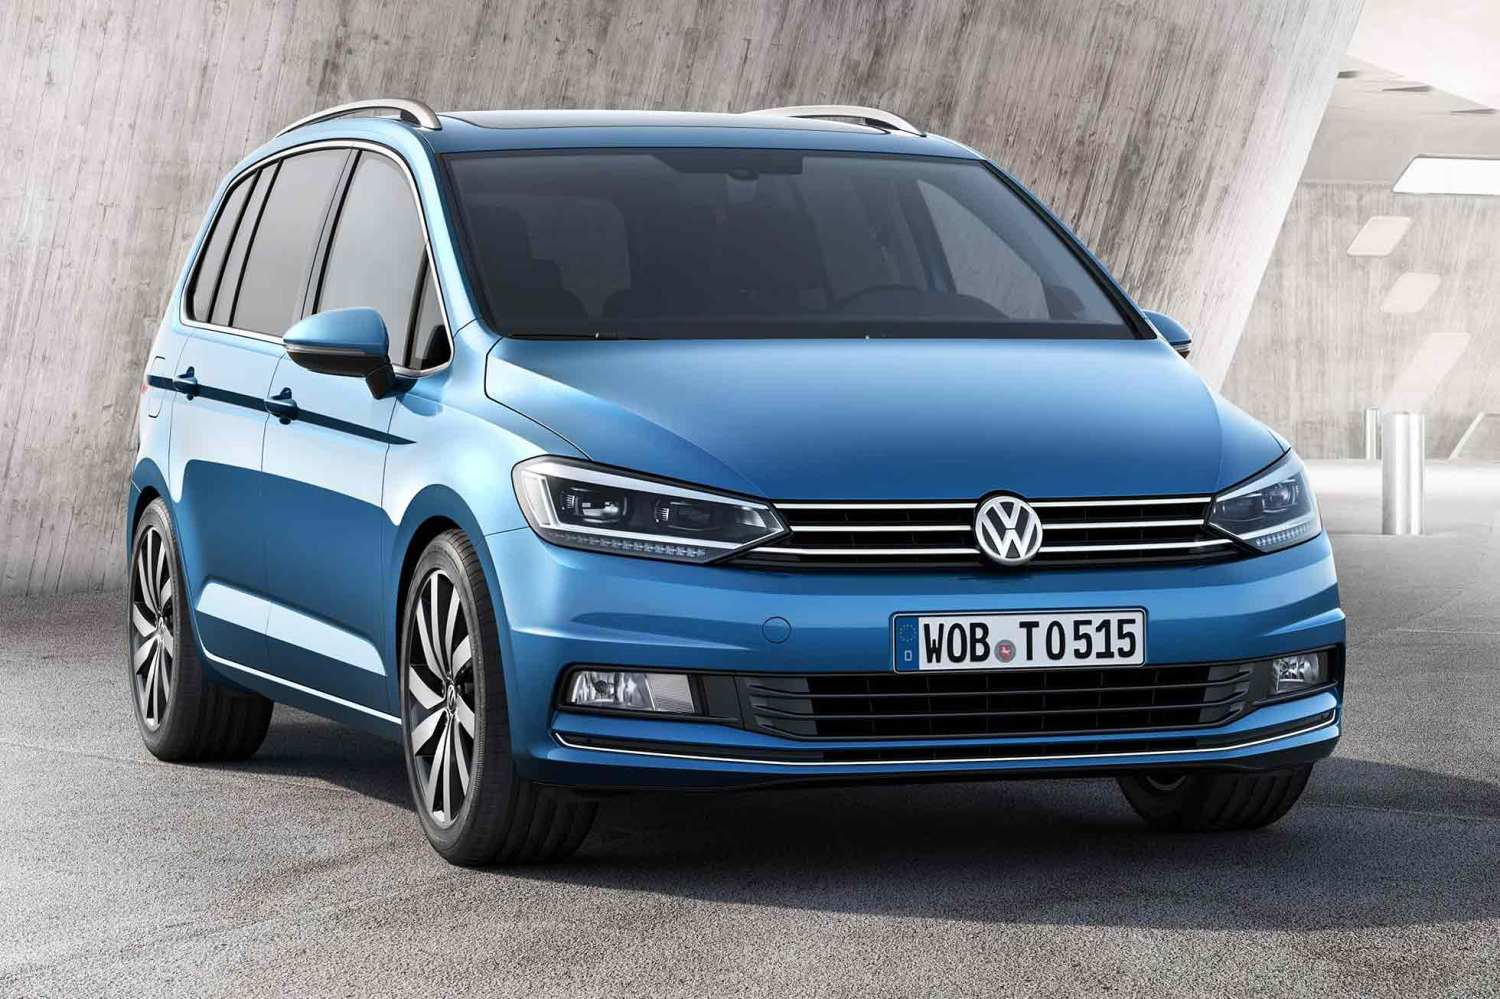 New Volkswagen Touran